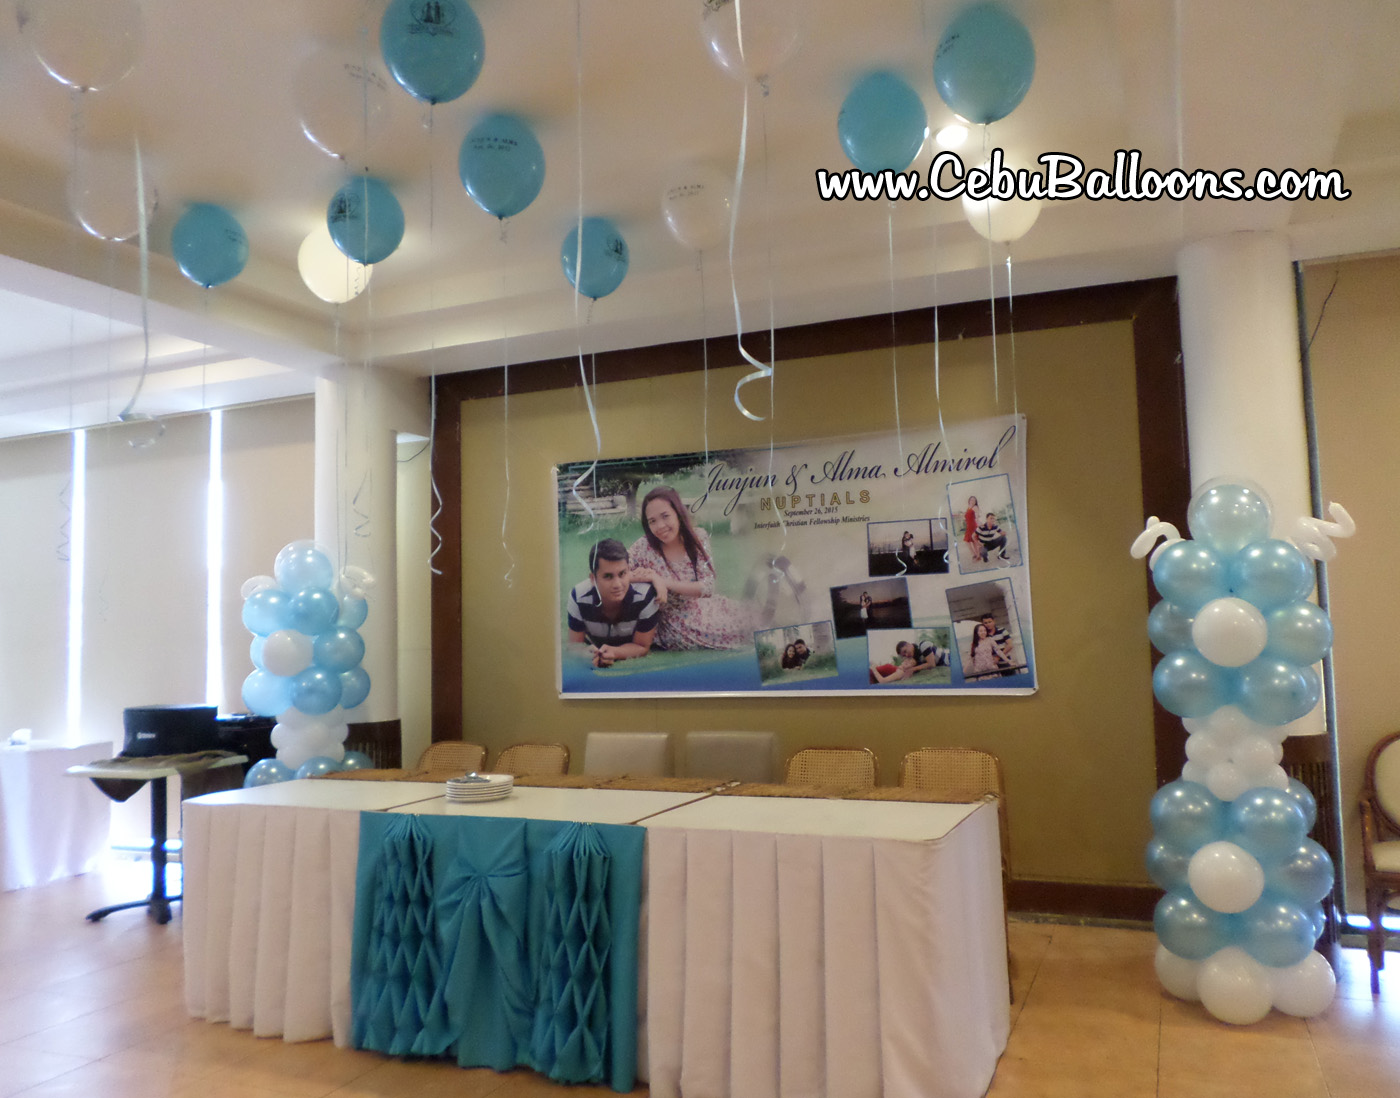 Balloon decoration for a wedding celebration at sugbahan cebu